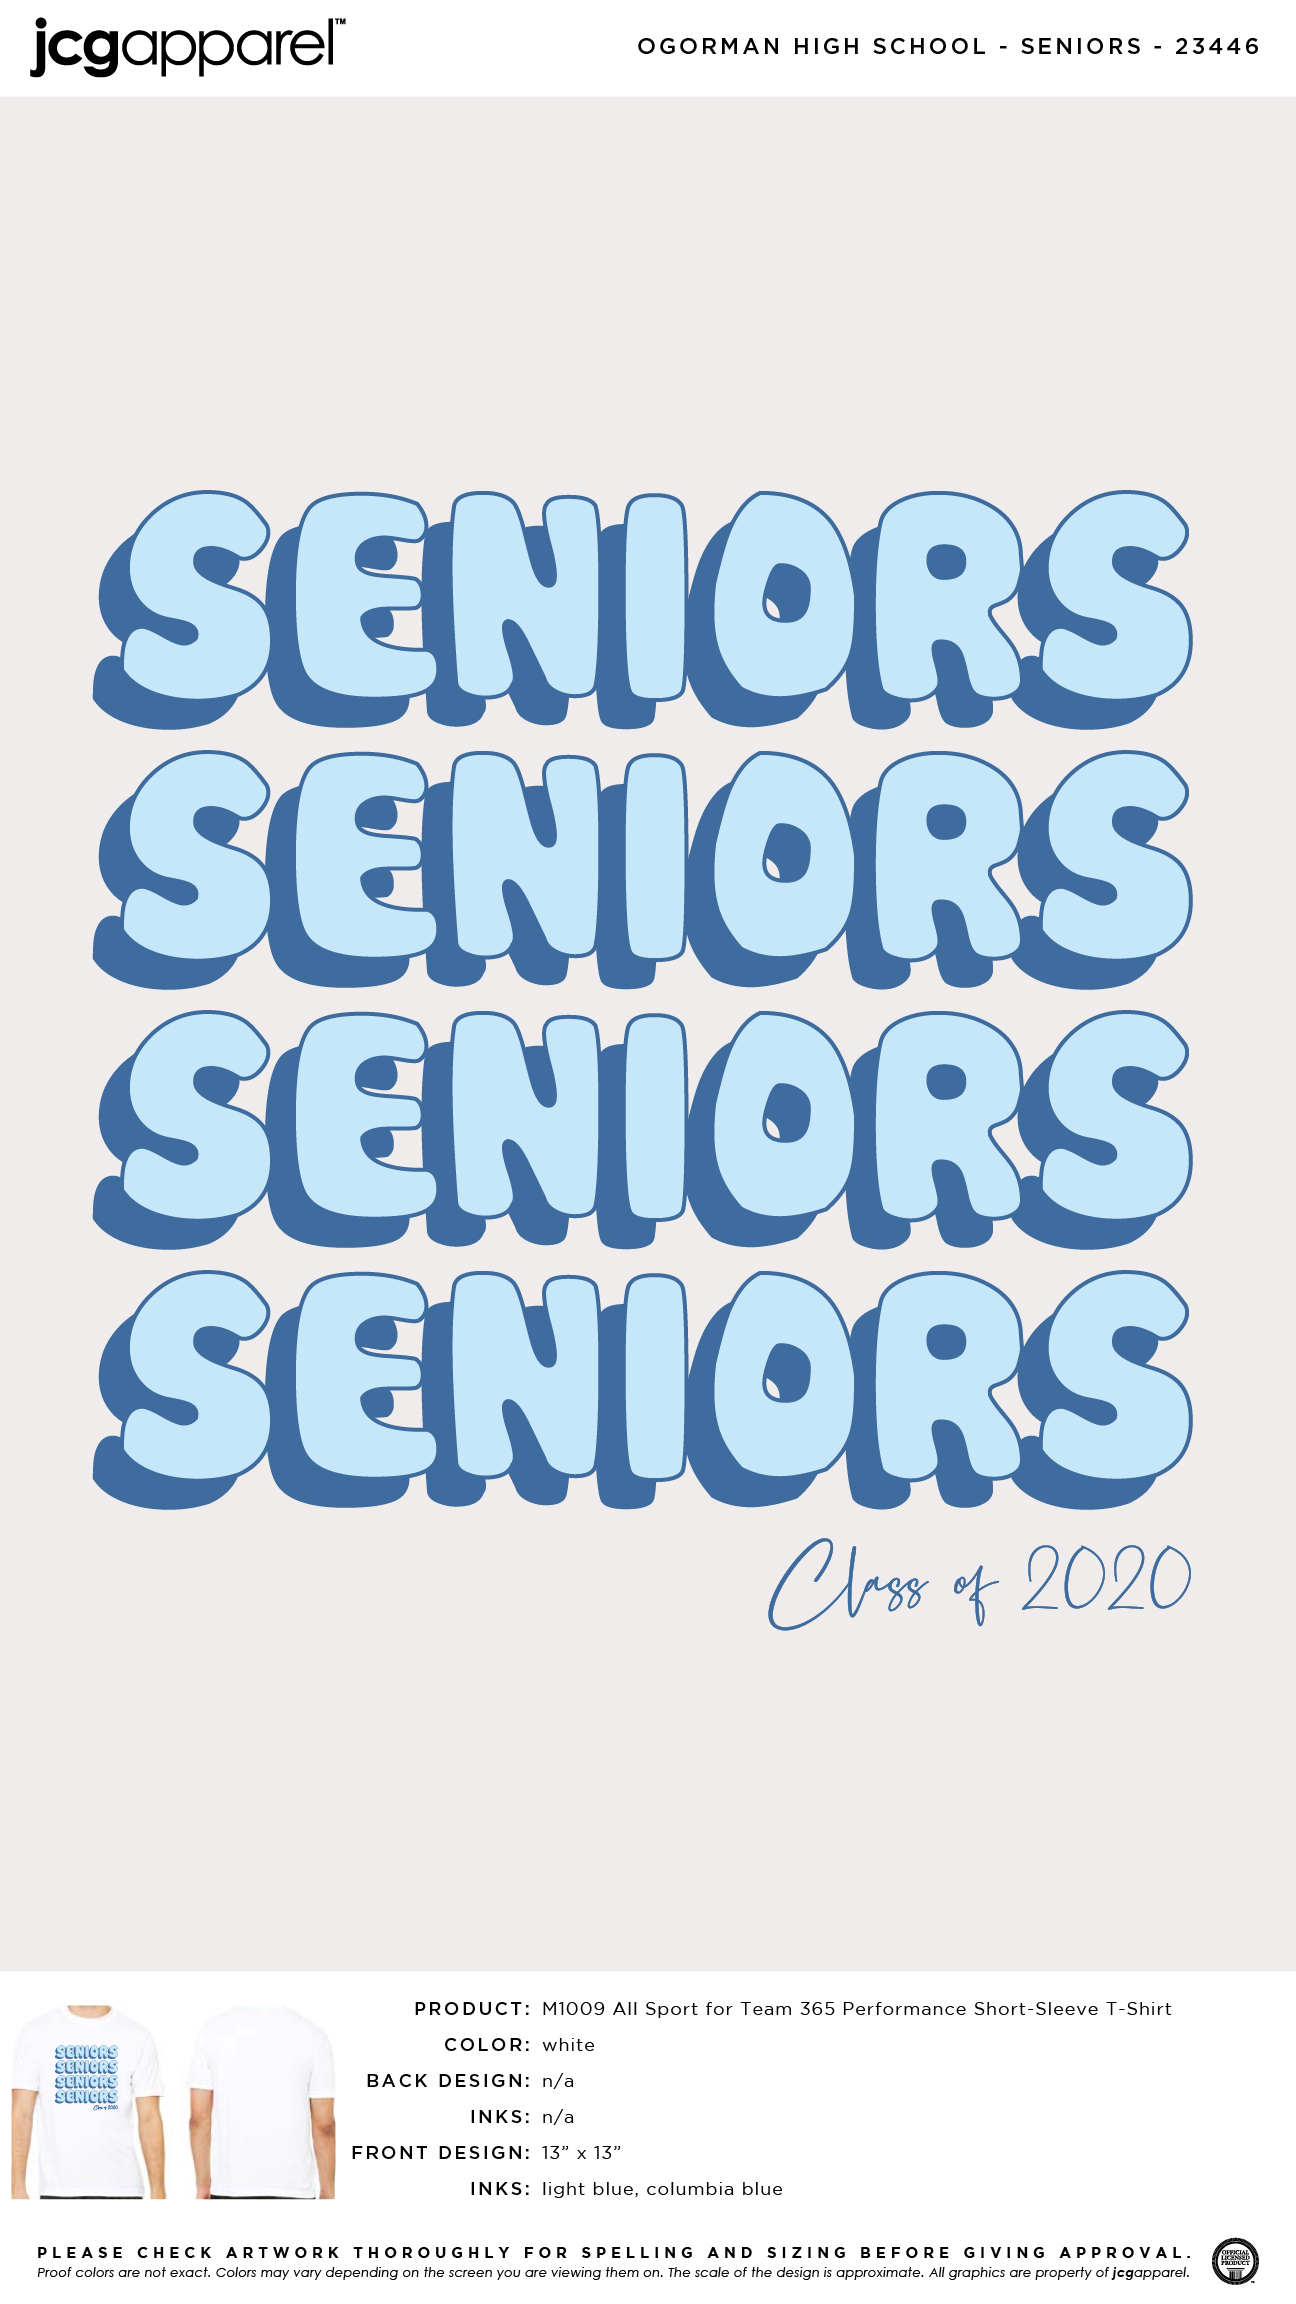 High School Senior Shirts #seniors #repeat #letters #bold #design